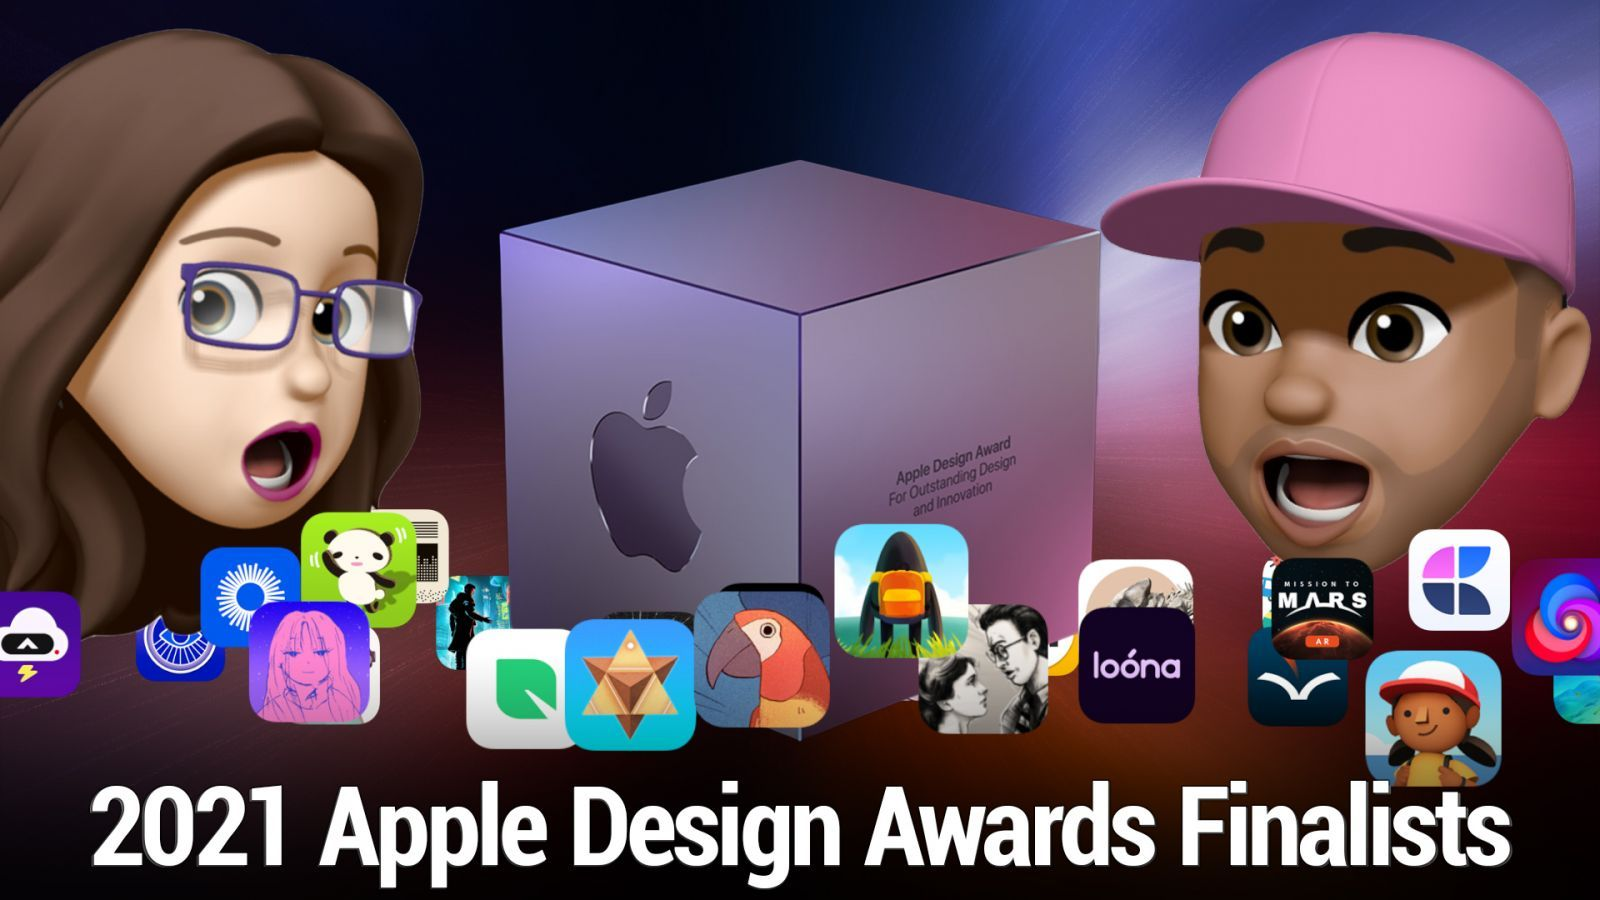 Apple Design Awards Finalists - Little Orpheus, Wonderbox, CARROT Weather, Genshin Impact, and more